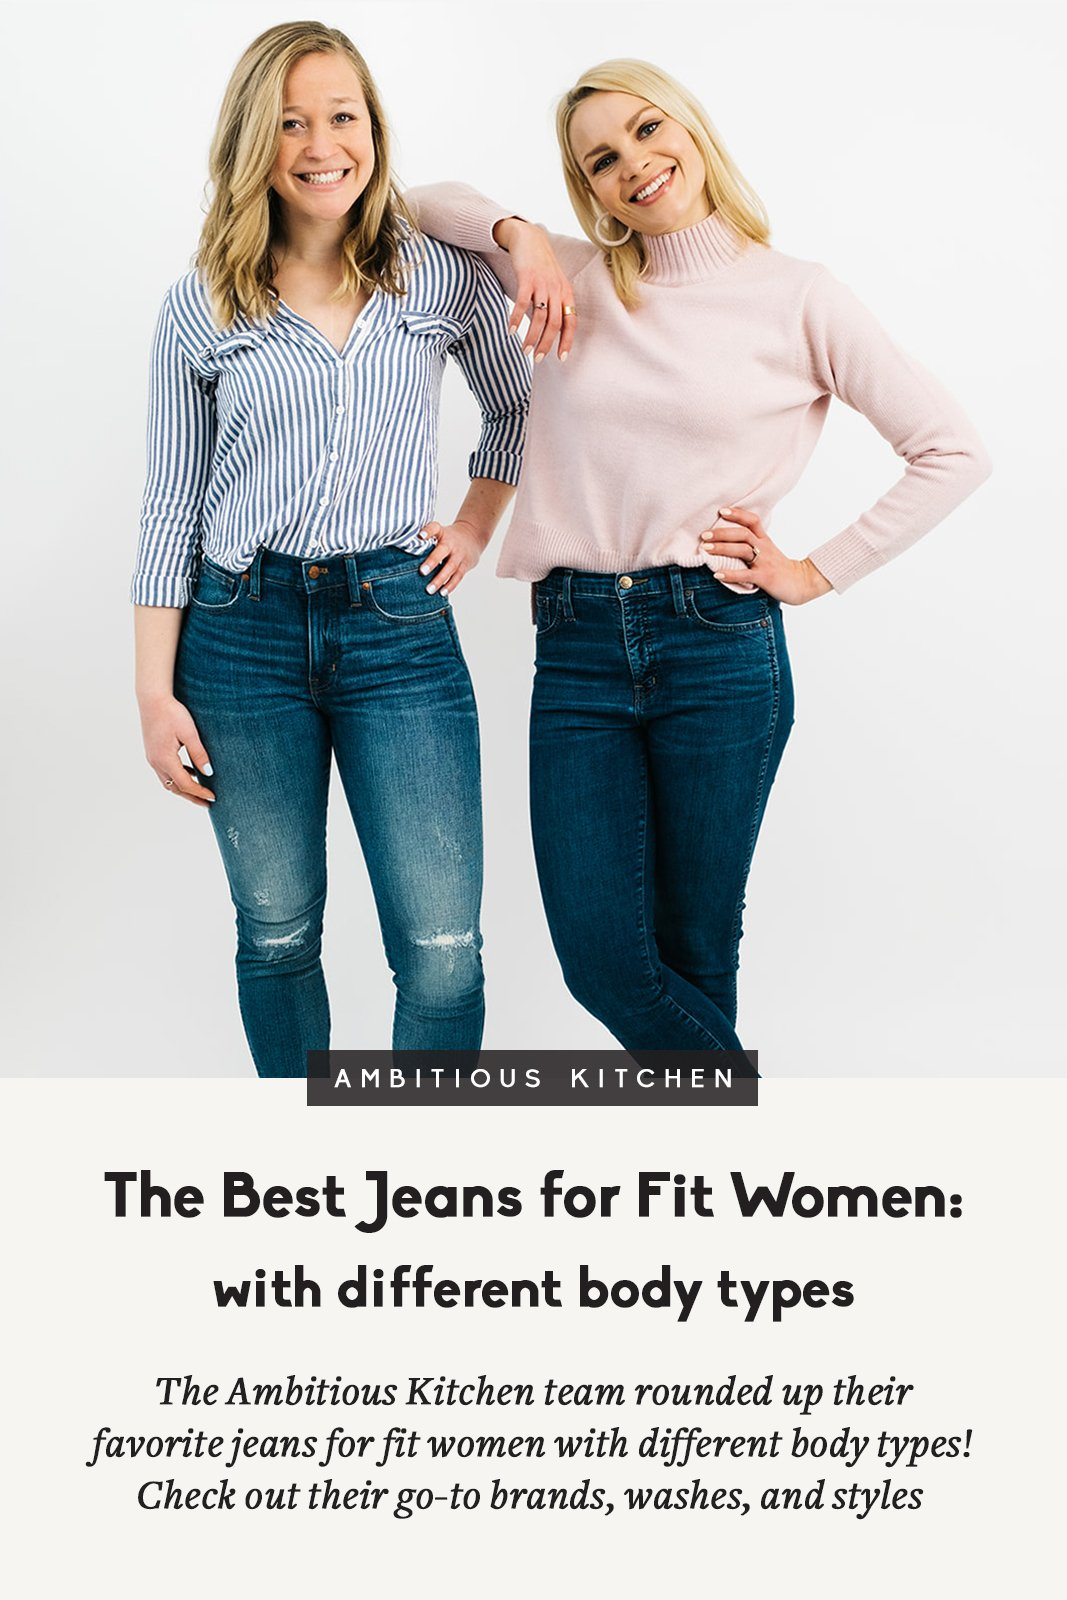 two blonde women posing in jeans with text overlay